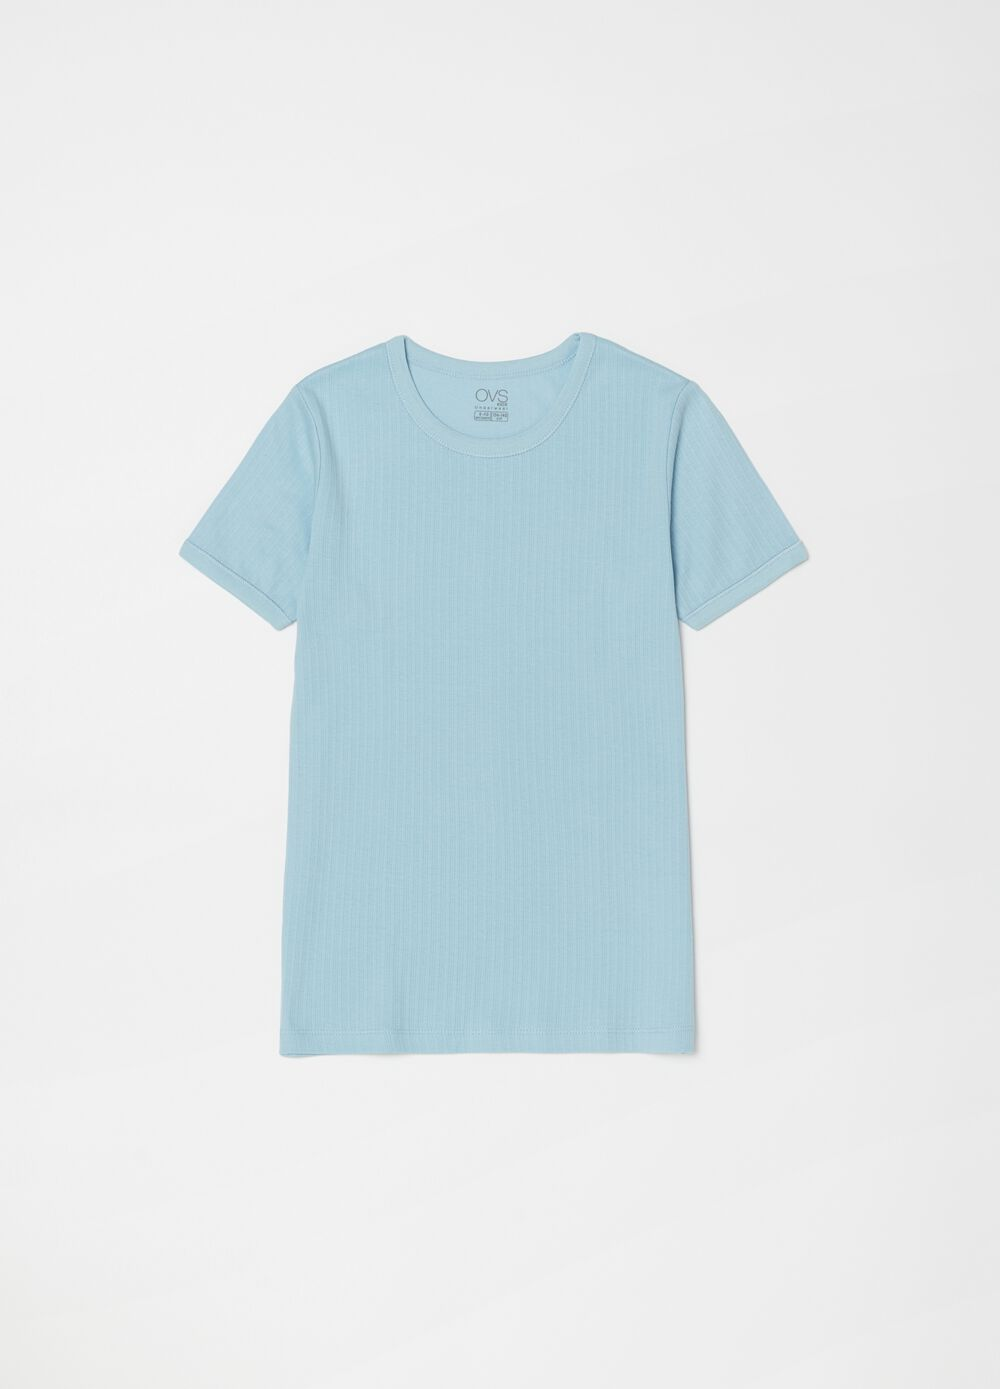 Undershirt in organic cotton with striped weave